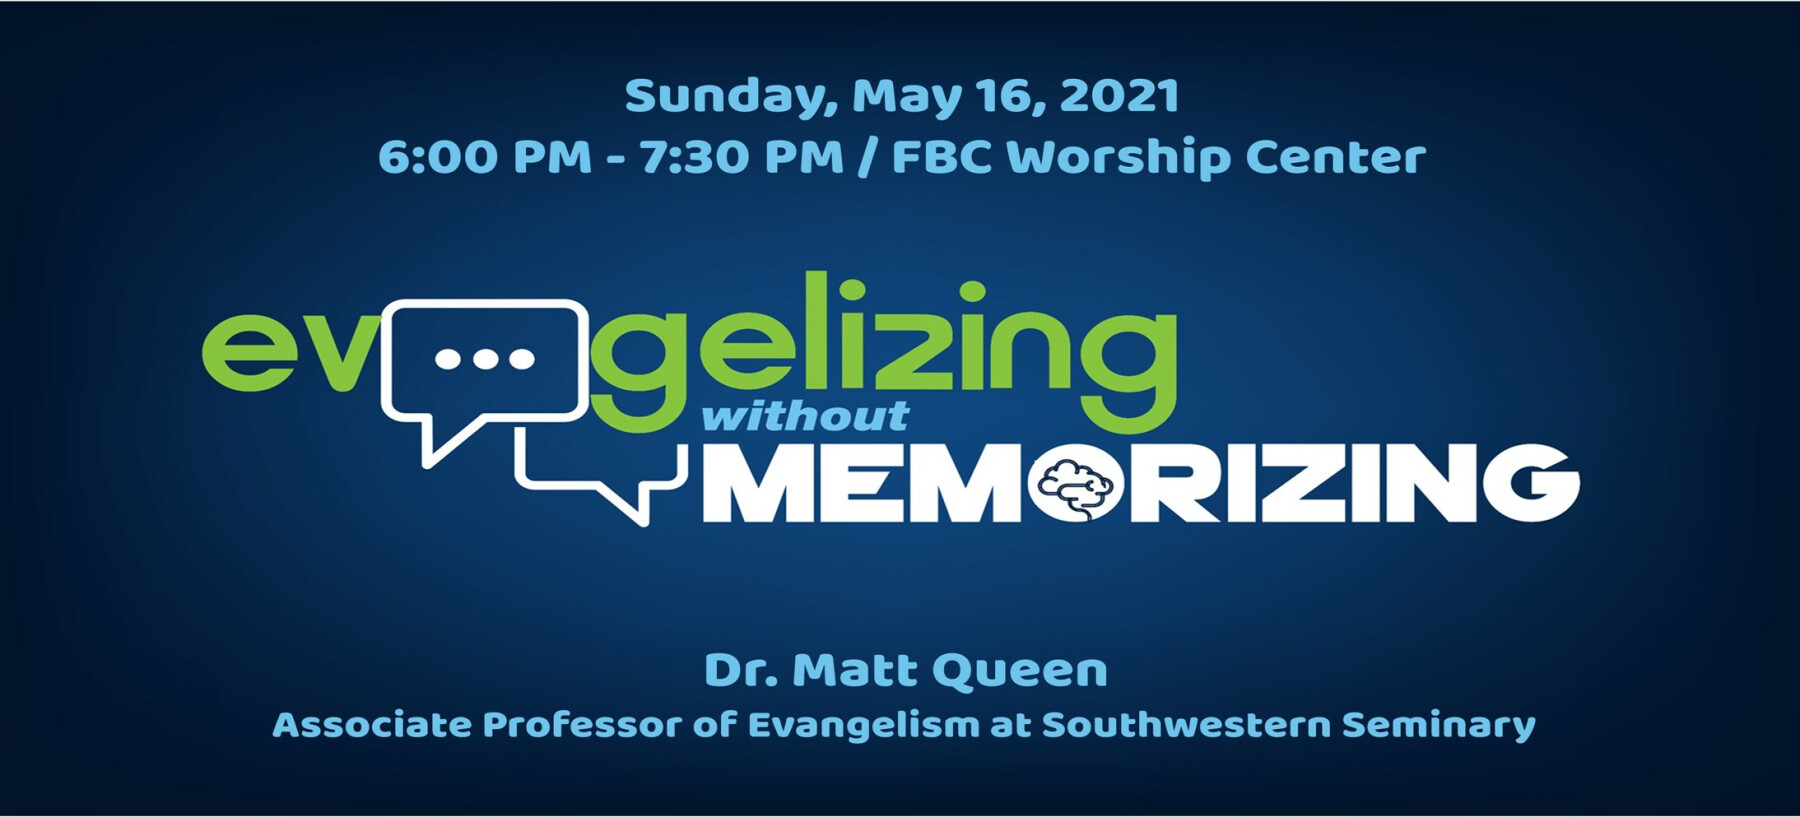 Evangelizing without Memorizing Workshop